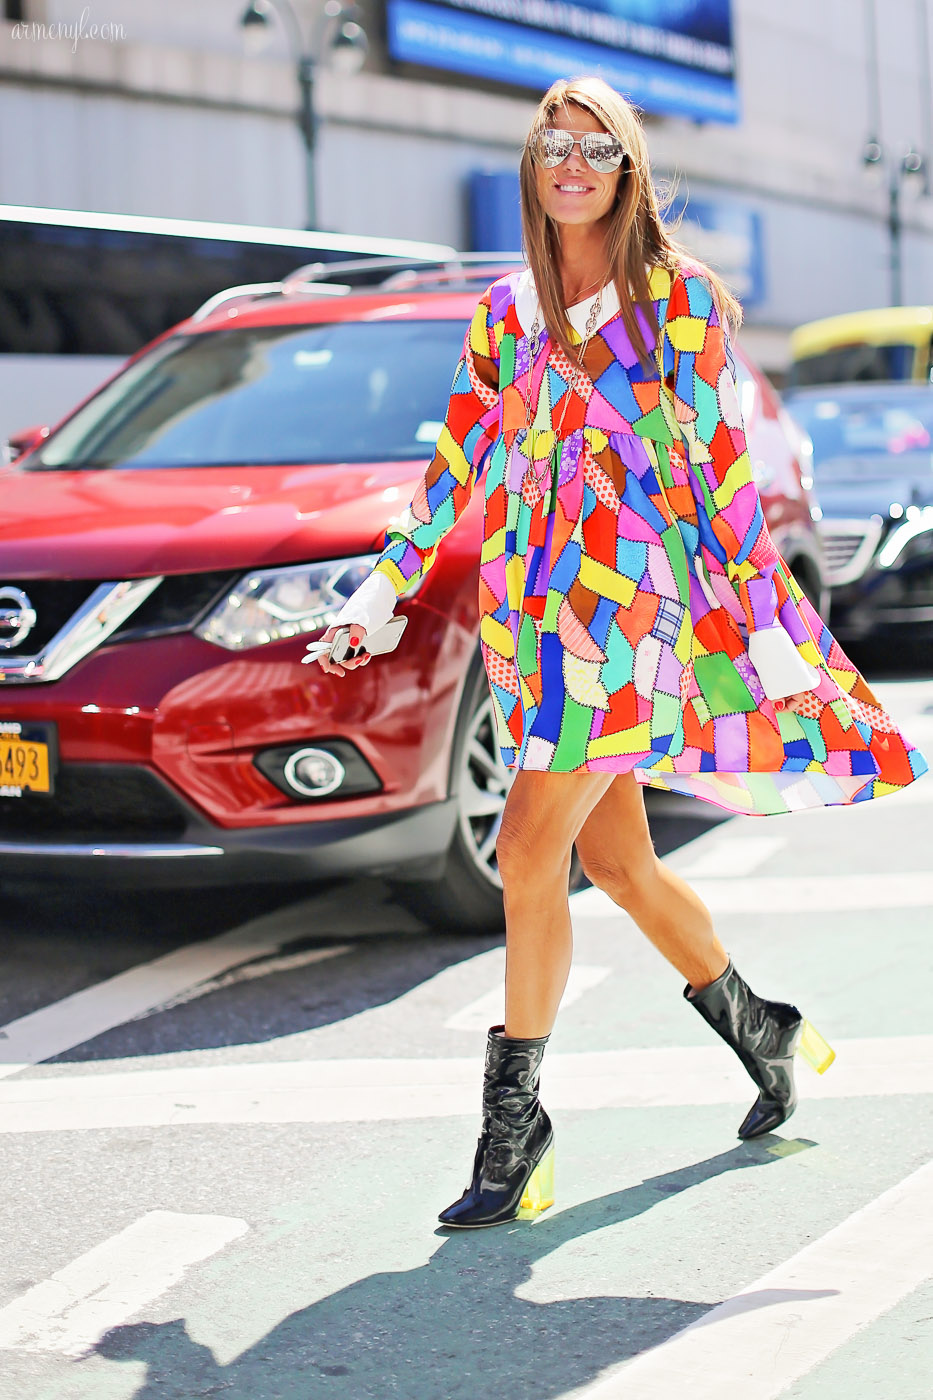 Anna Dello Russo at New York Fashion Week September ss 2015, at Jeremy Scott photographed by Armenyl.com